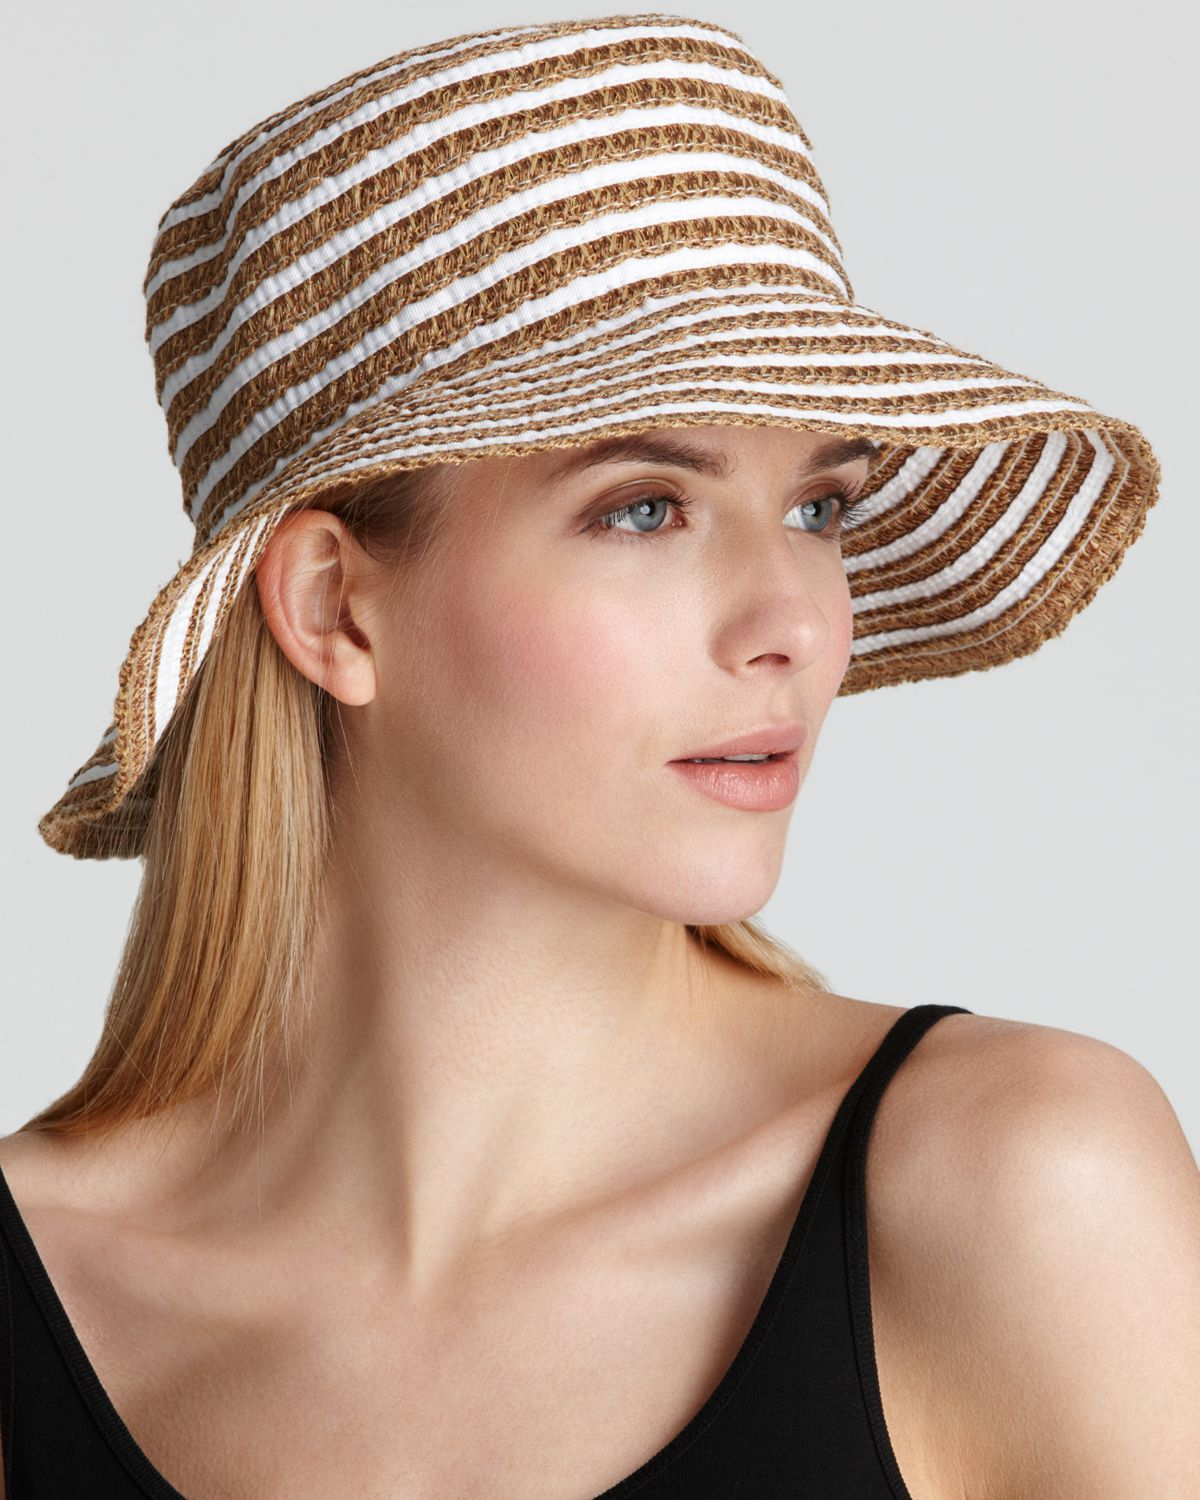 Lyst - Eric Javits Braid Dame Multicolor Bucket Hat in White db645f7852d